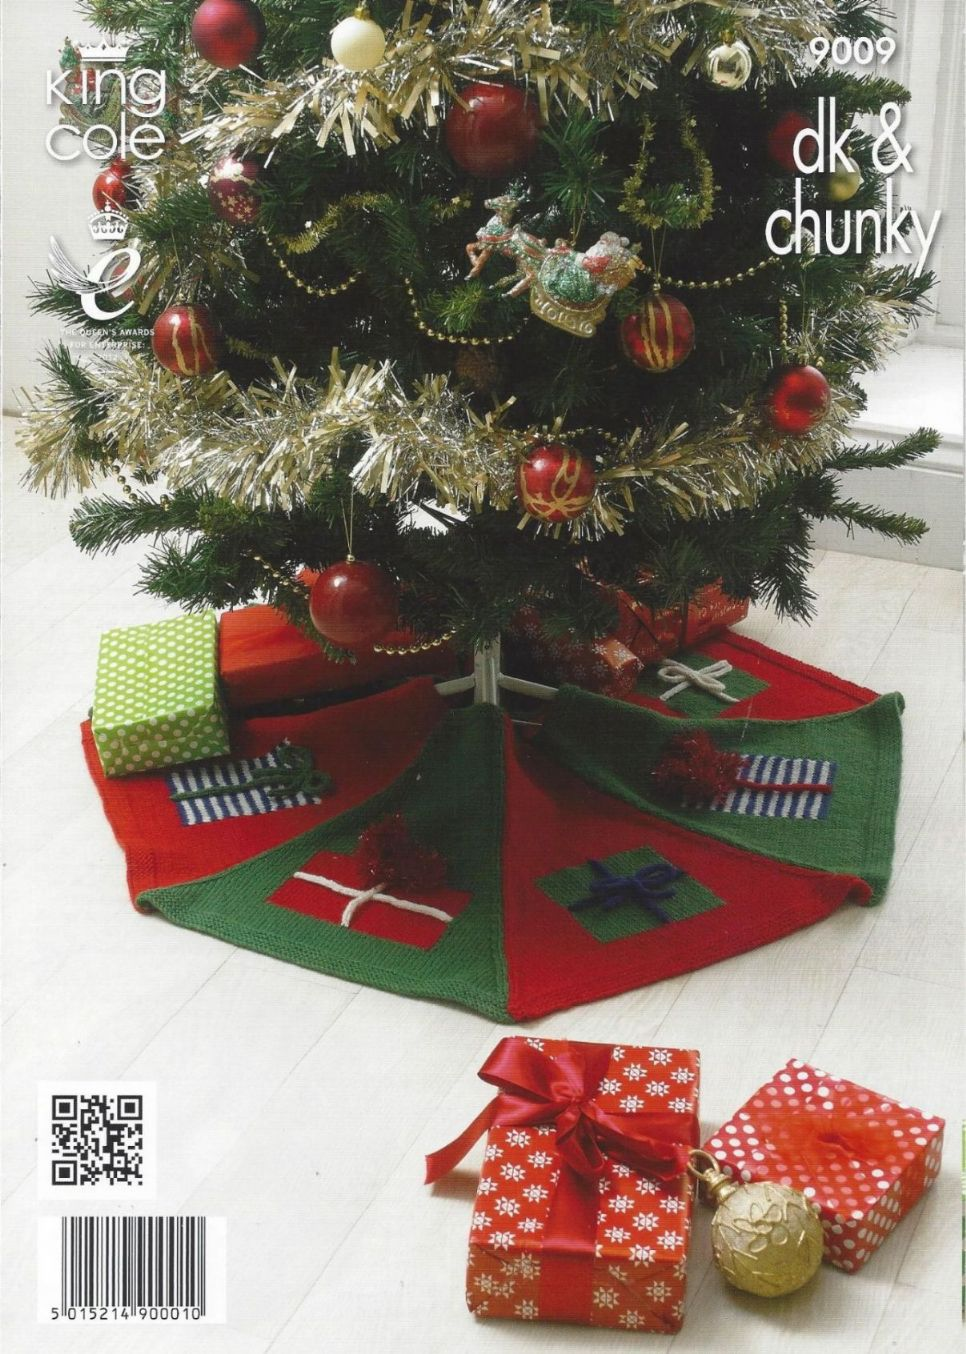 Christmas Tree Skirt Patterns.King Cole 9009 Rudolph Draught Excluder Christmas Tree Skirt And Snowman Toy Knitting Pattern